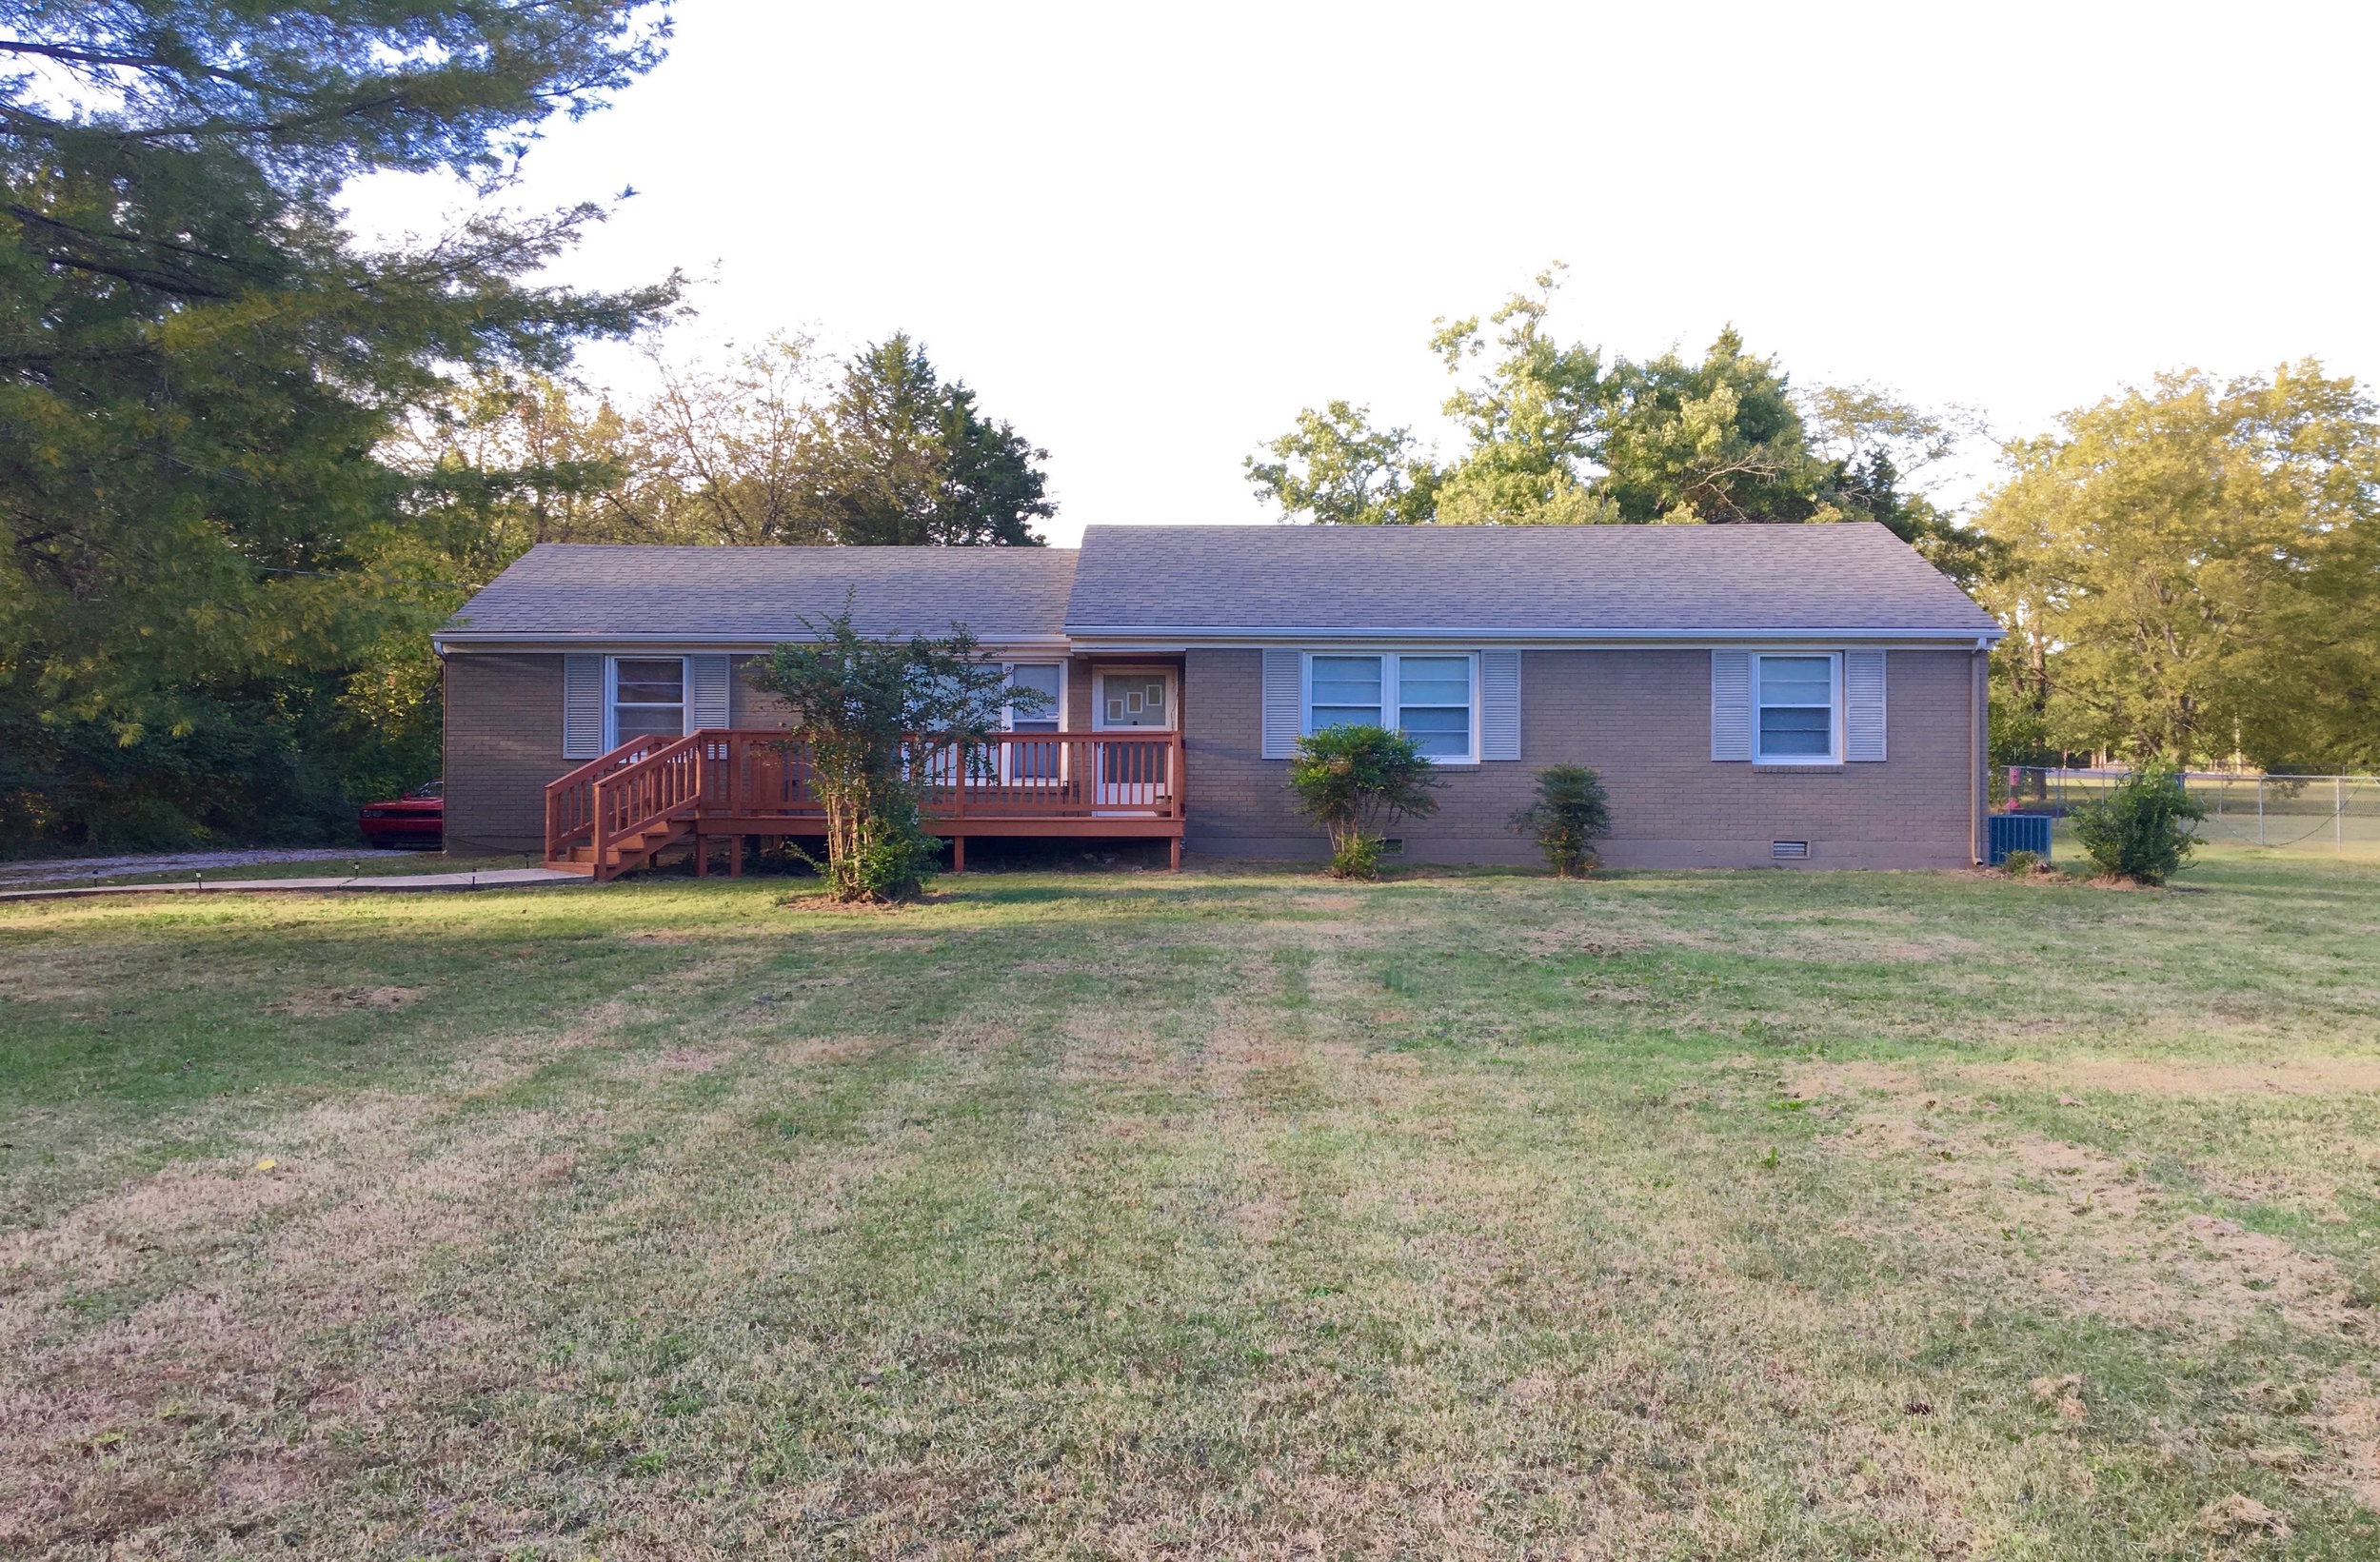 920 Westchester RENTED   MADISON: Single Family Home:  3 Br 1 Ba + Garage + Deck + 1 Acre